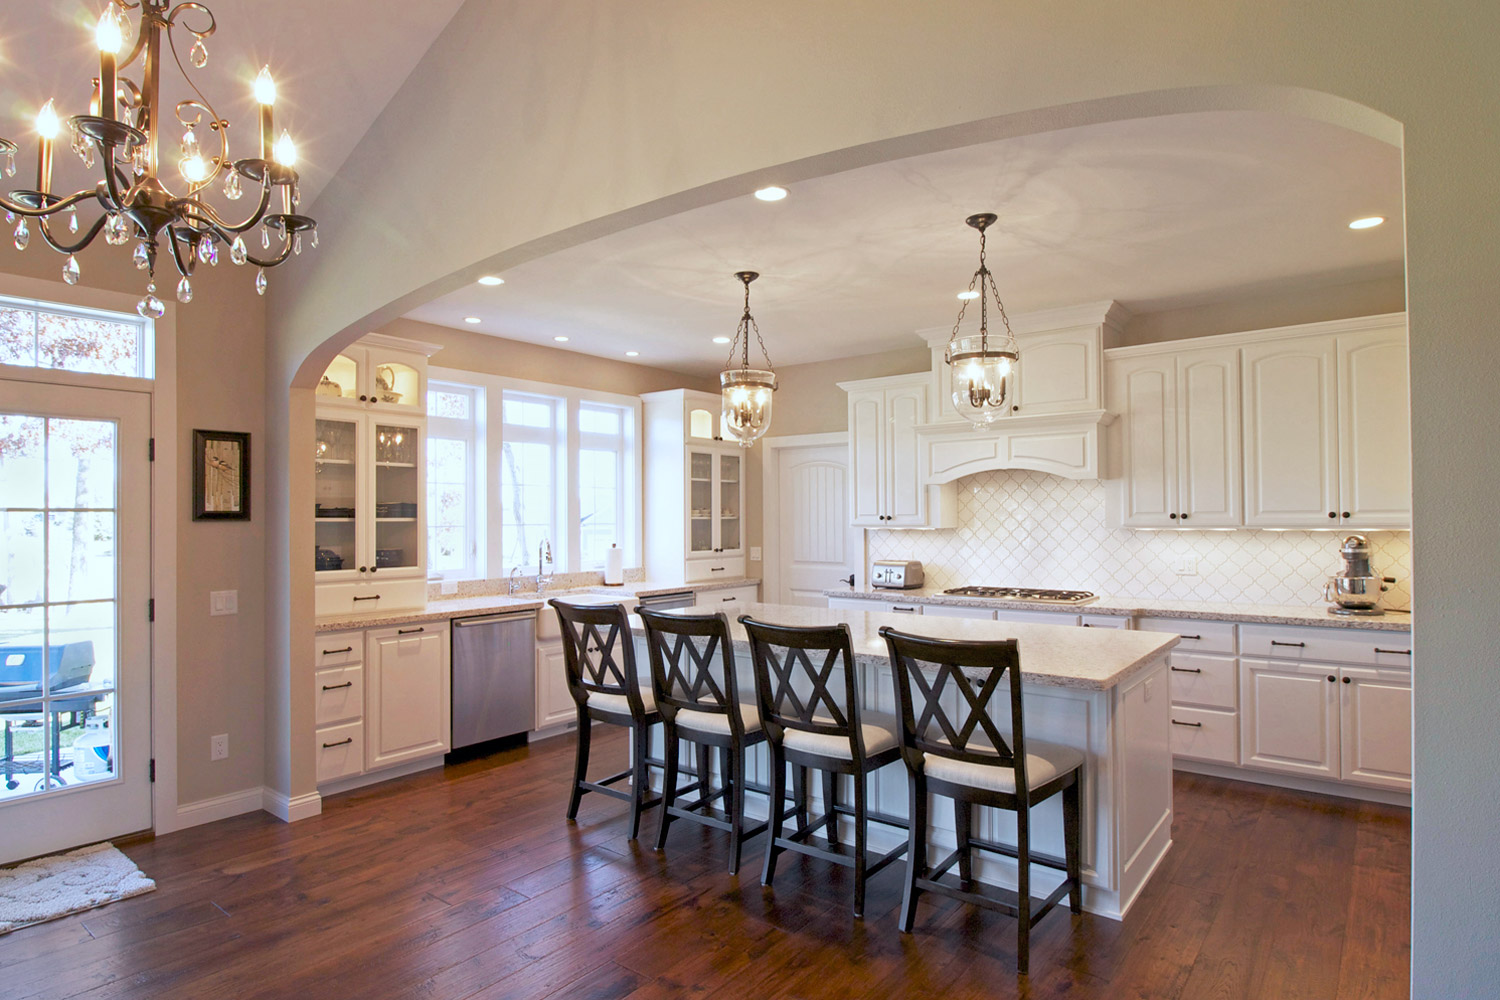 designs kitchen country french decoremodel fancy ideas design